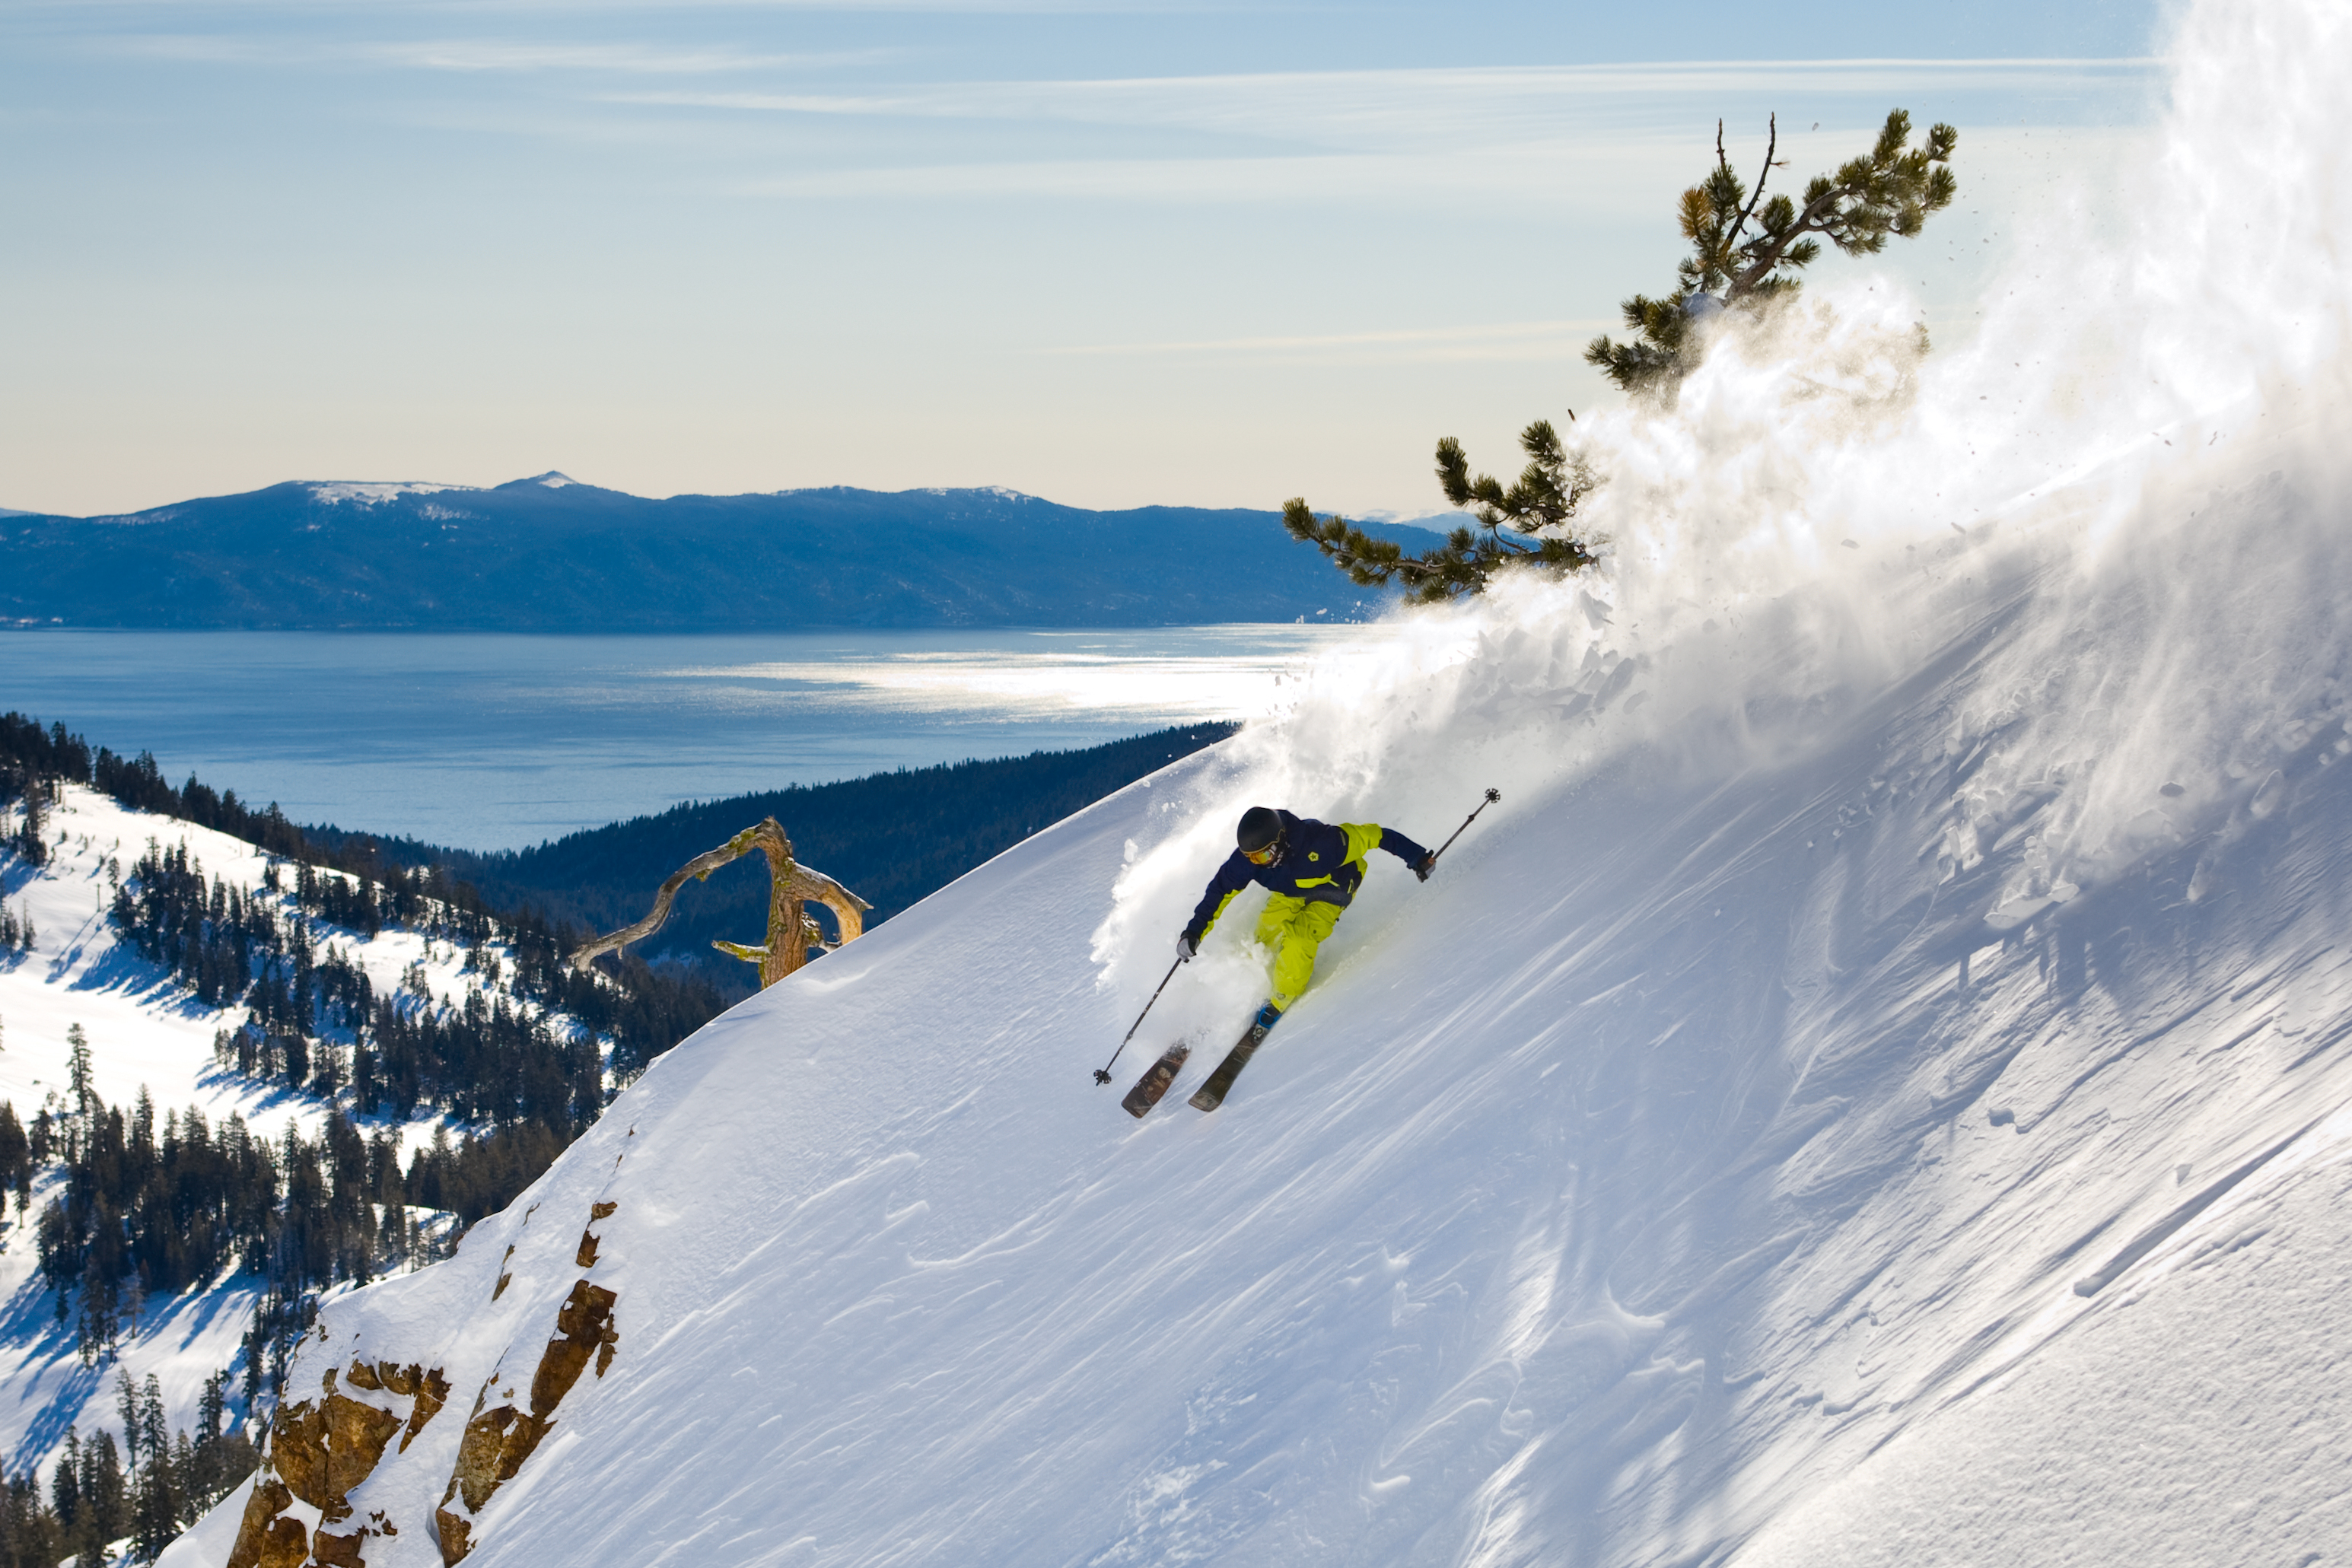 welcome to winter festivities at squaw valley and alpine meadows